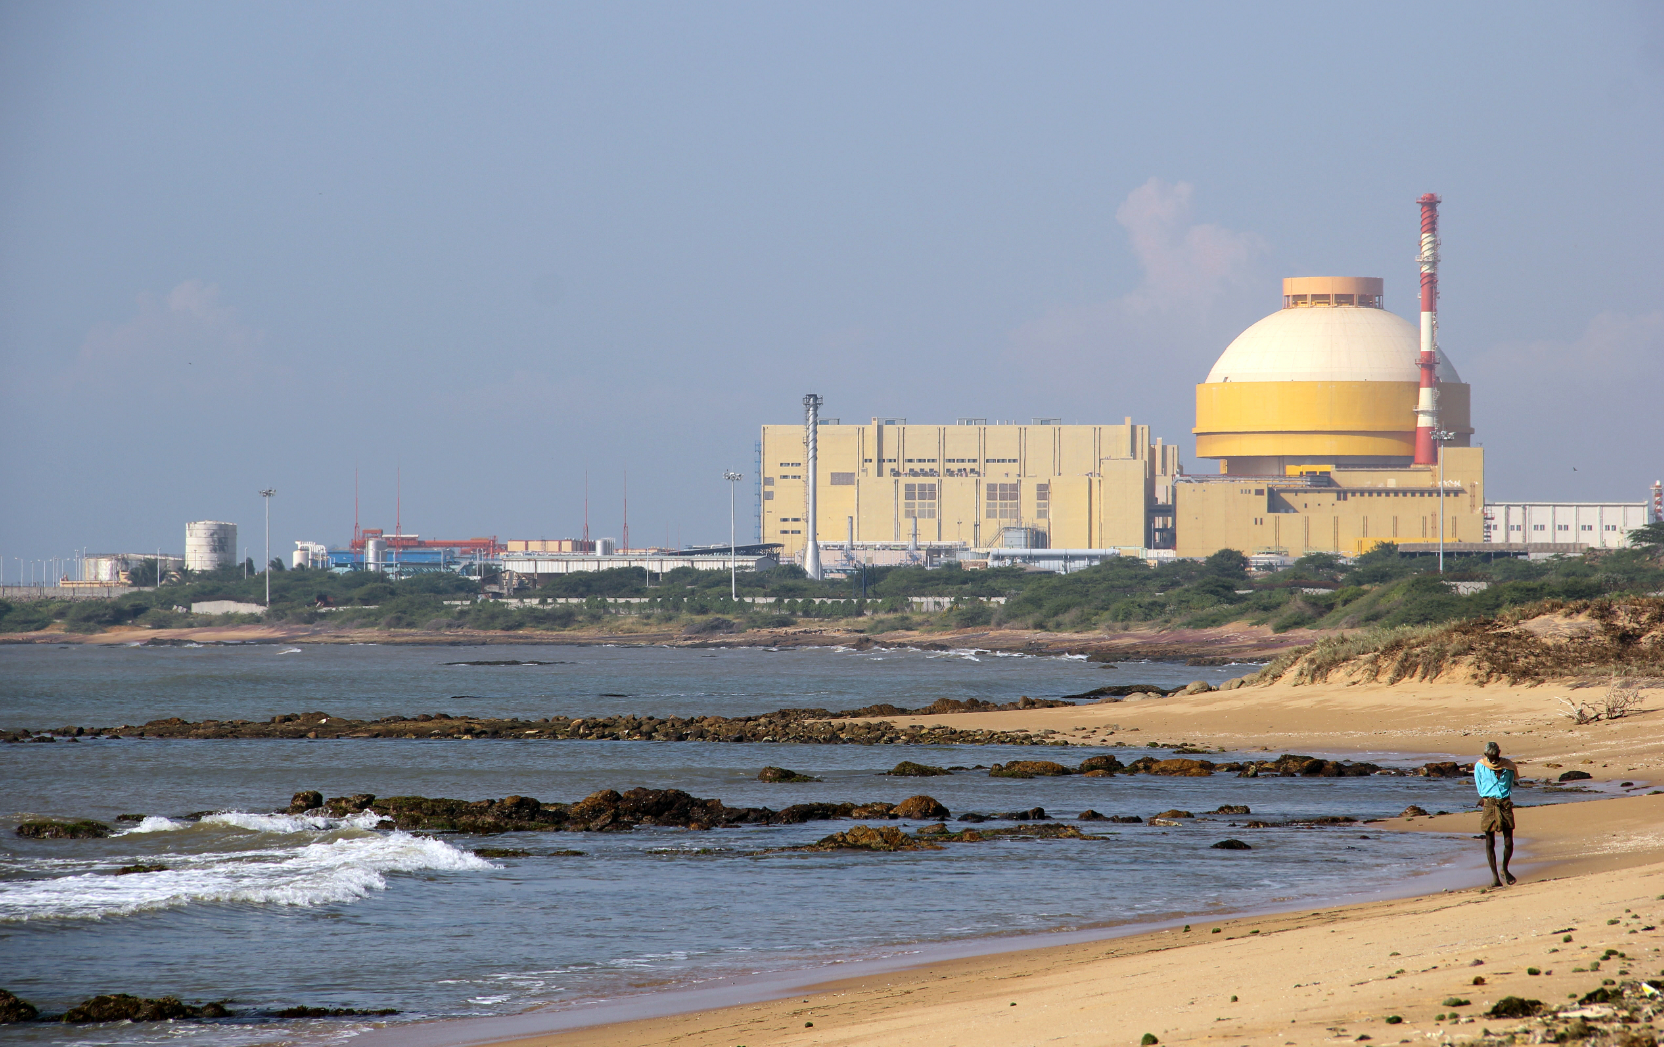 Roastom constructed the Kudankulam nuclear power plant, which is now being operated by NPCIL.